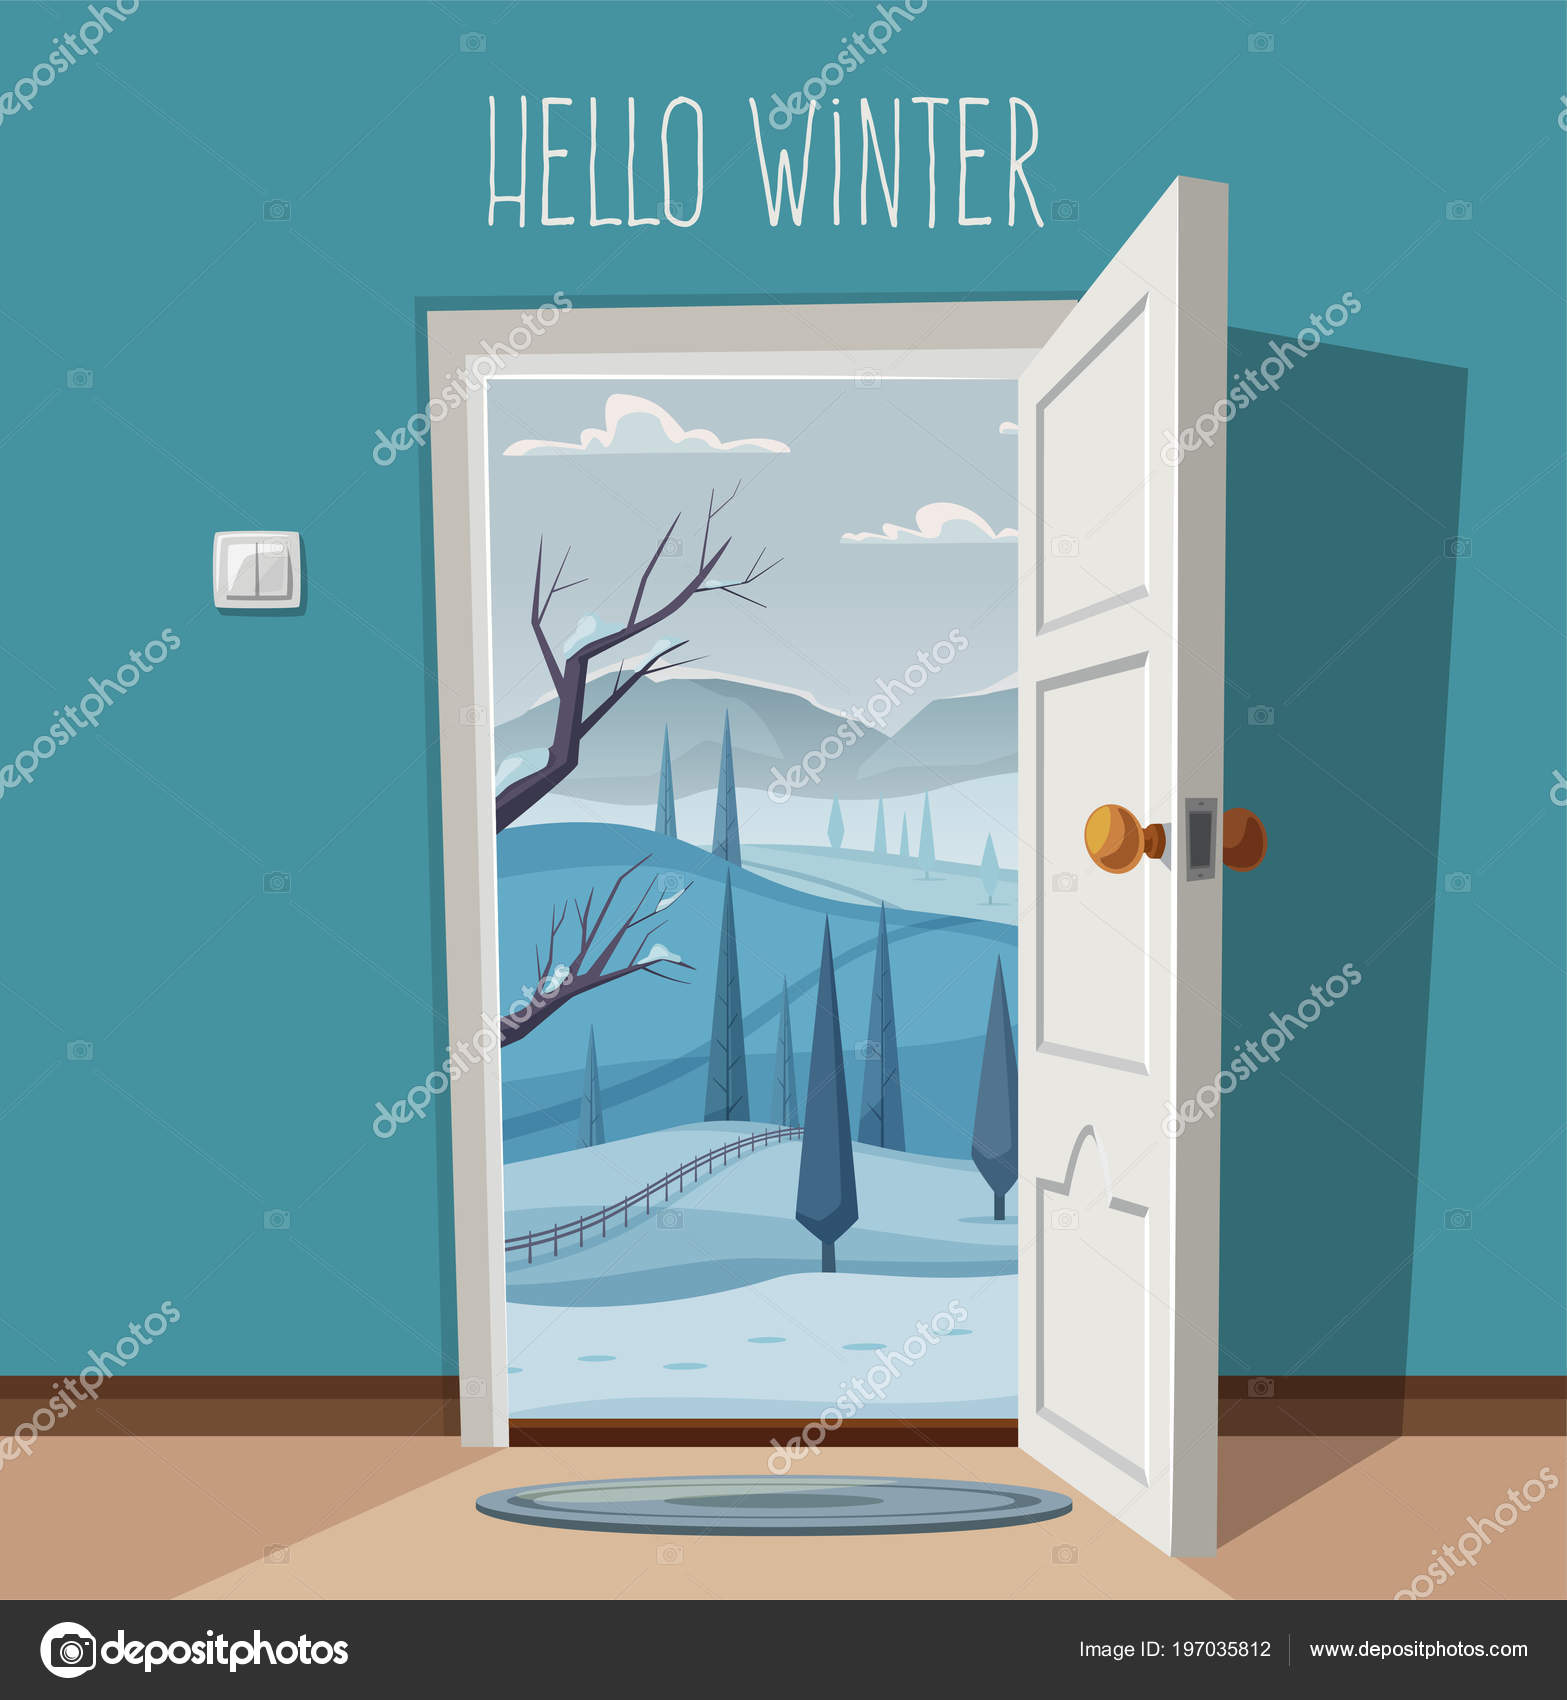 open door welcome left open open door valley landscape cartoon vector illustration vintage poster welcome to winter